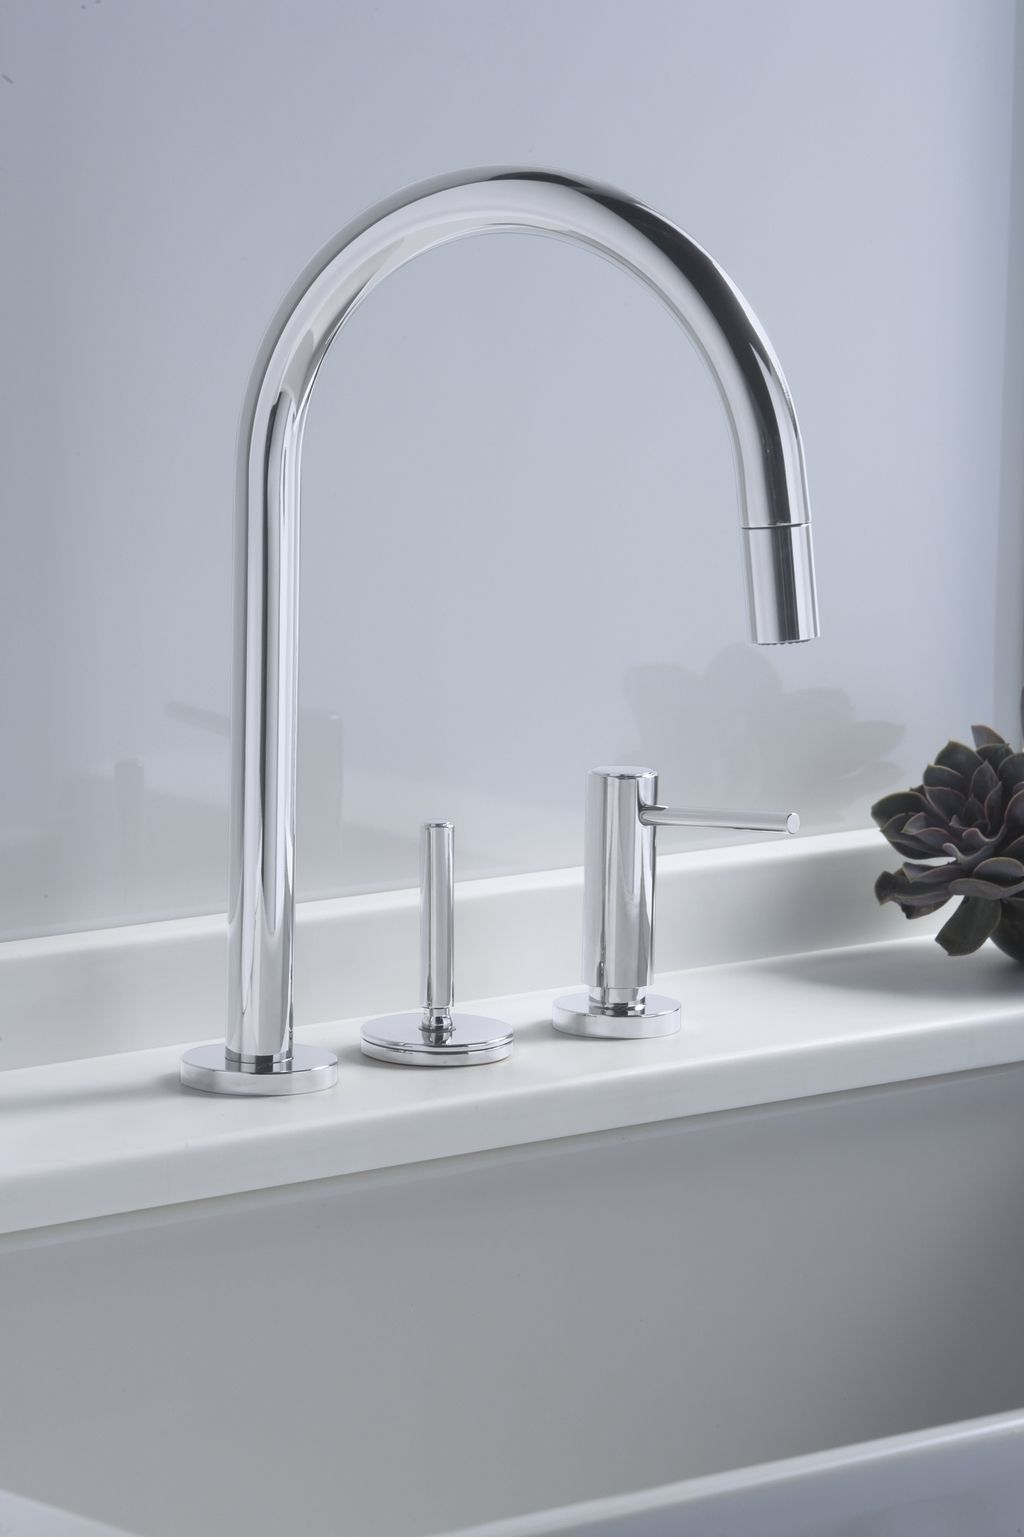 Kallista One Pull-down Kitchen Faucet & Kallista One Pull-down Kitchen Faucet | faucets in 2019 | Faucet ...